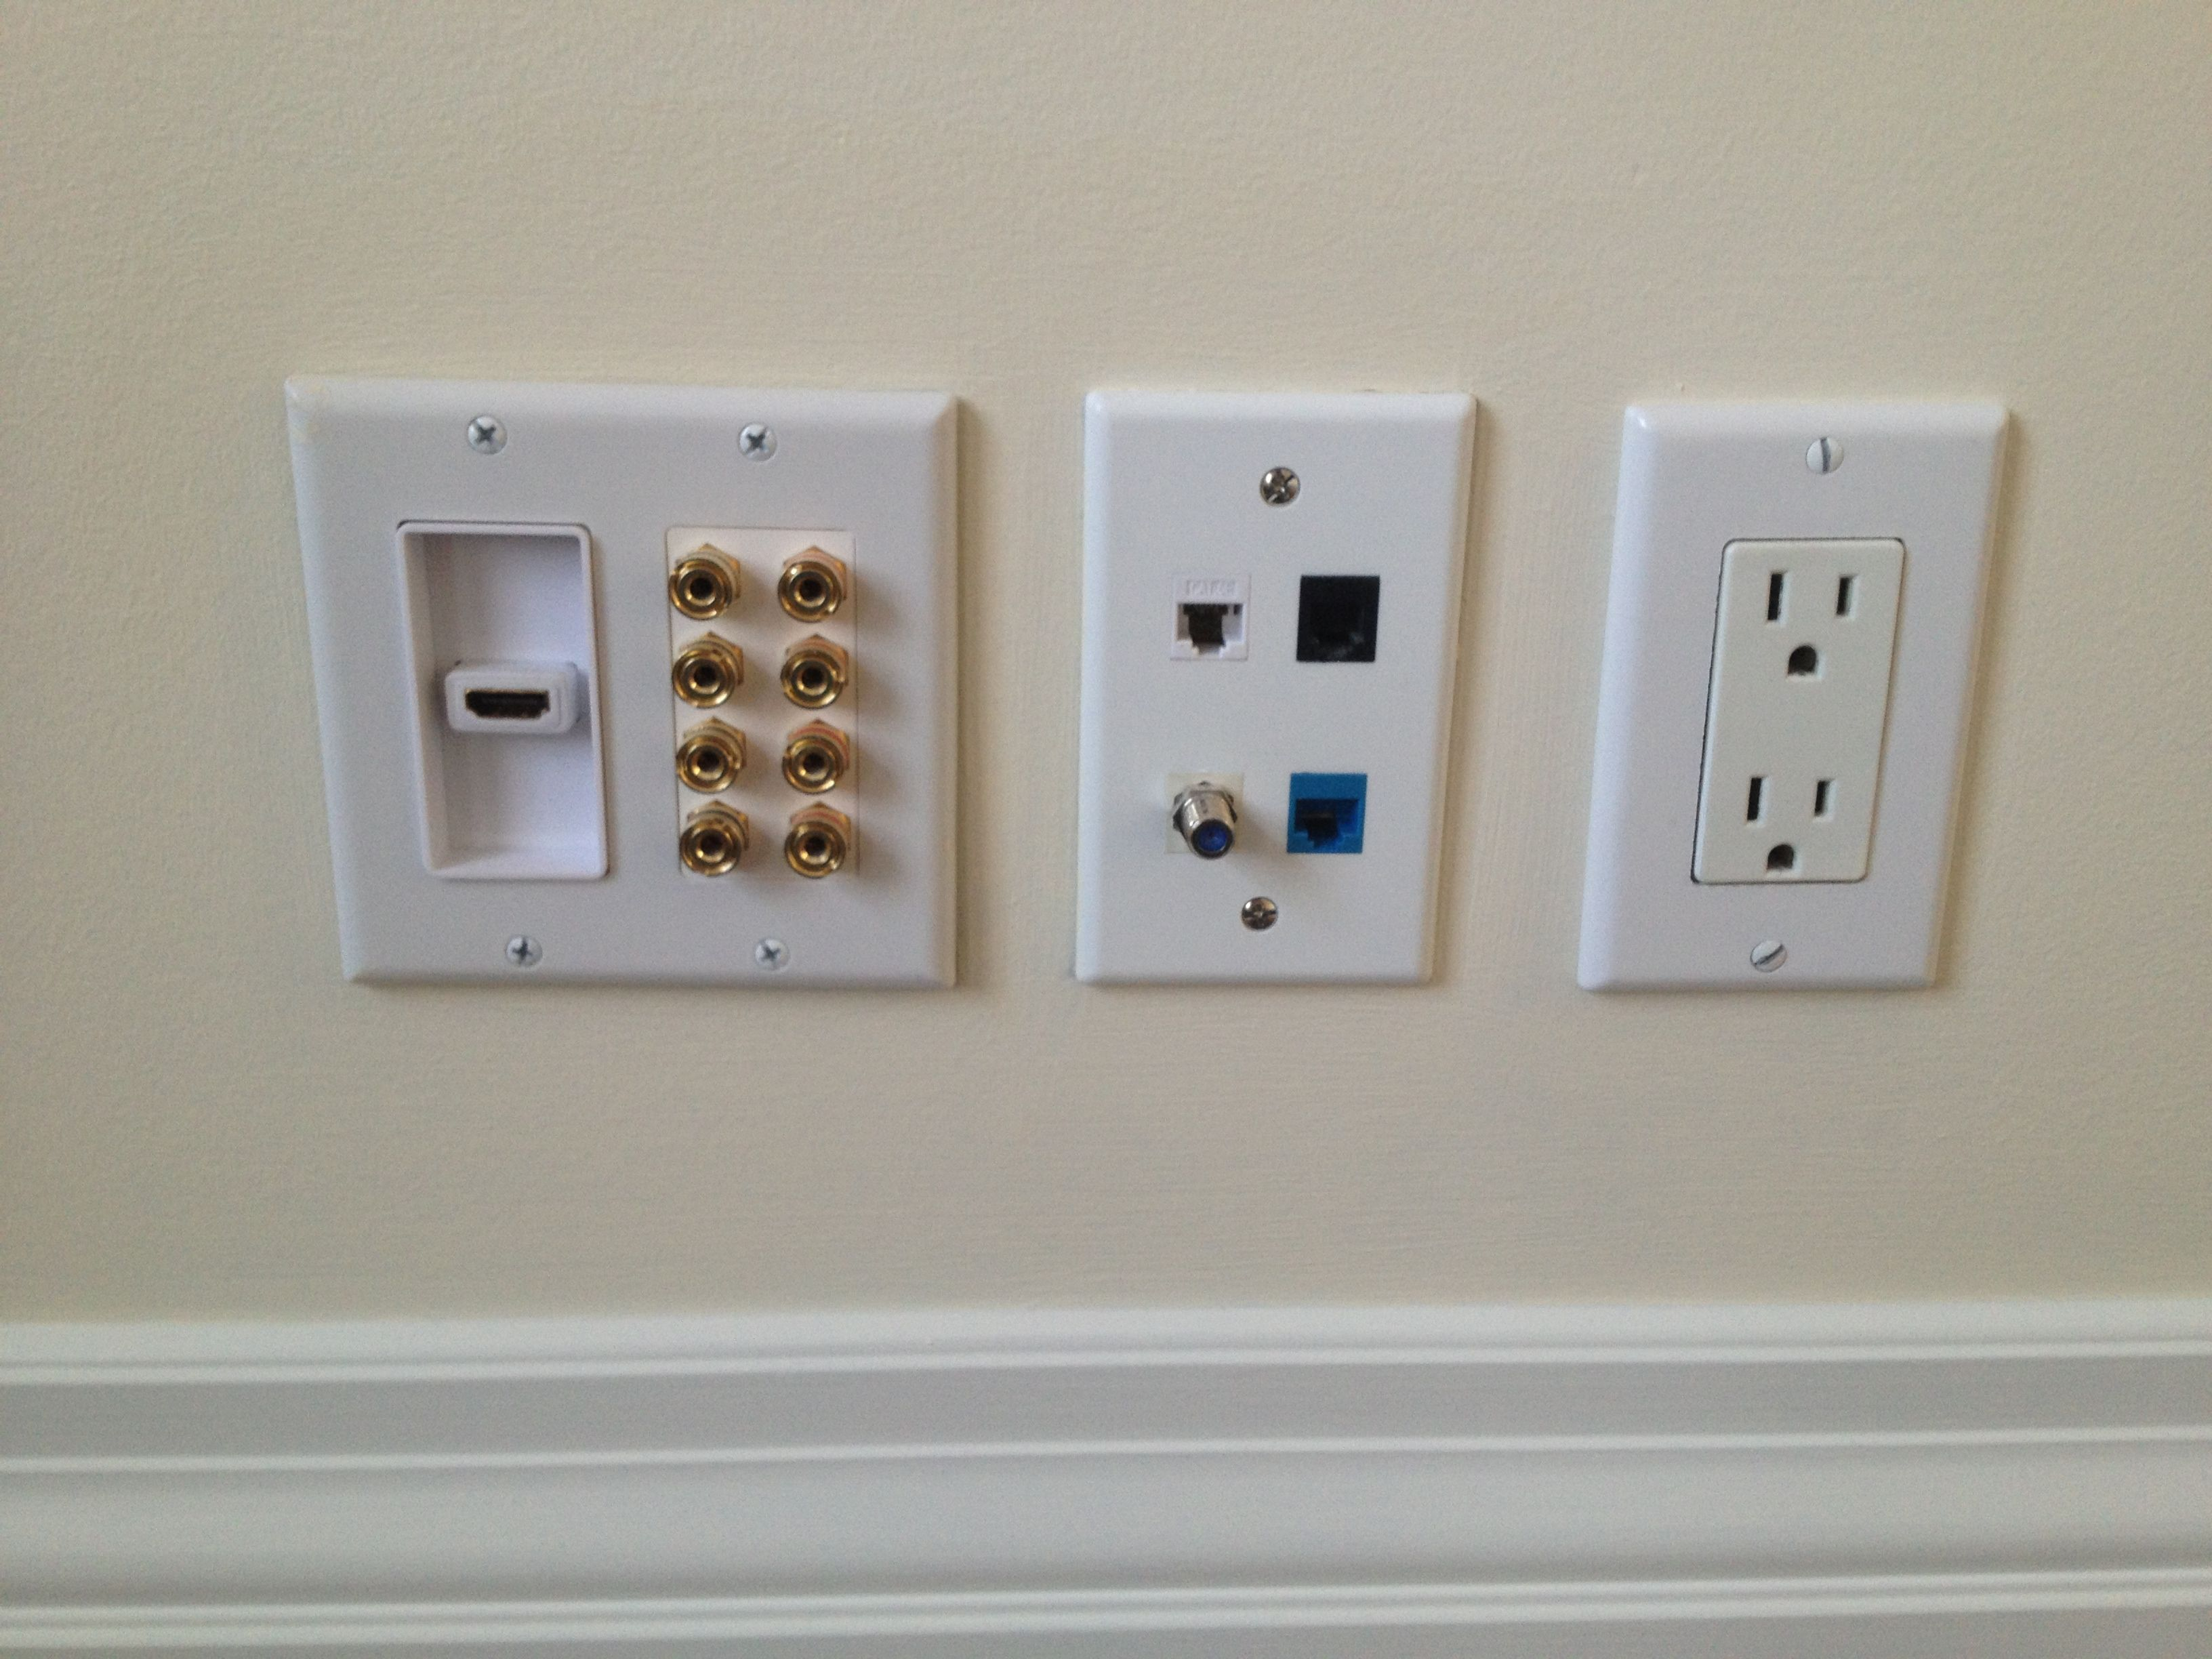 Banana Plug Wall Plate Enchanting 1 Hdmi Port Decora Insert With 4 Pairs Of Banana Plug Binding Post Inspiration